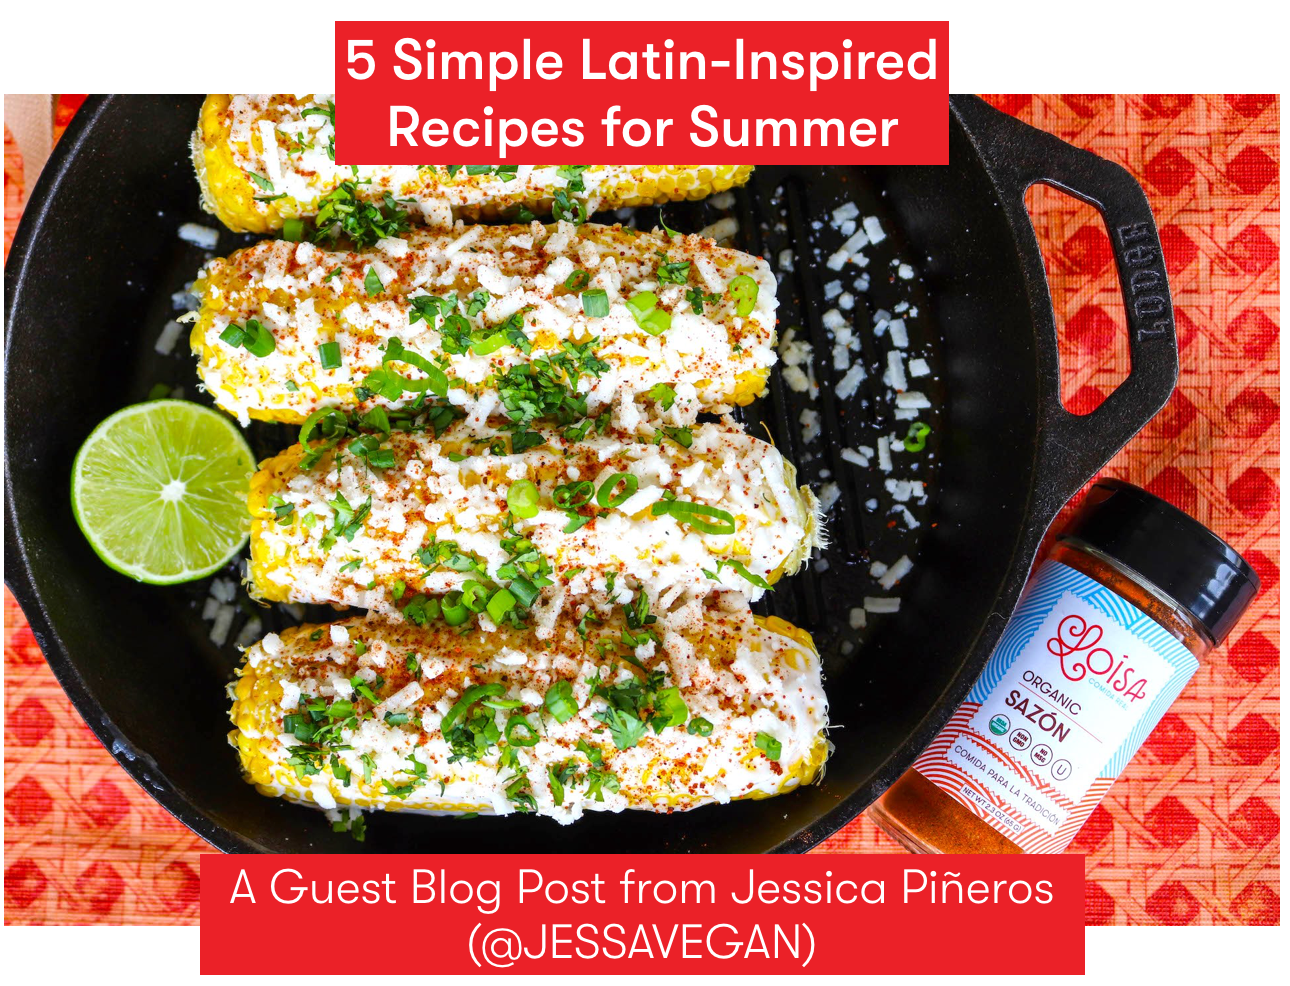 5 Simple Latin-Inspired Recipes for Summer